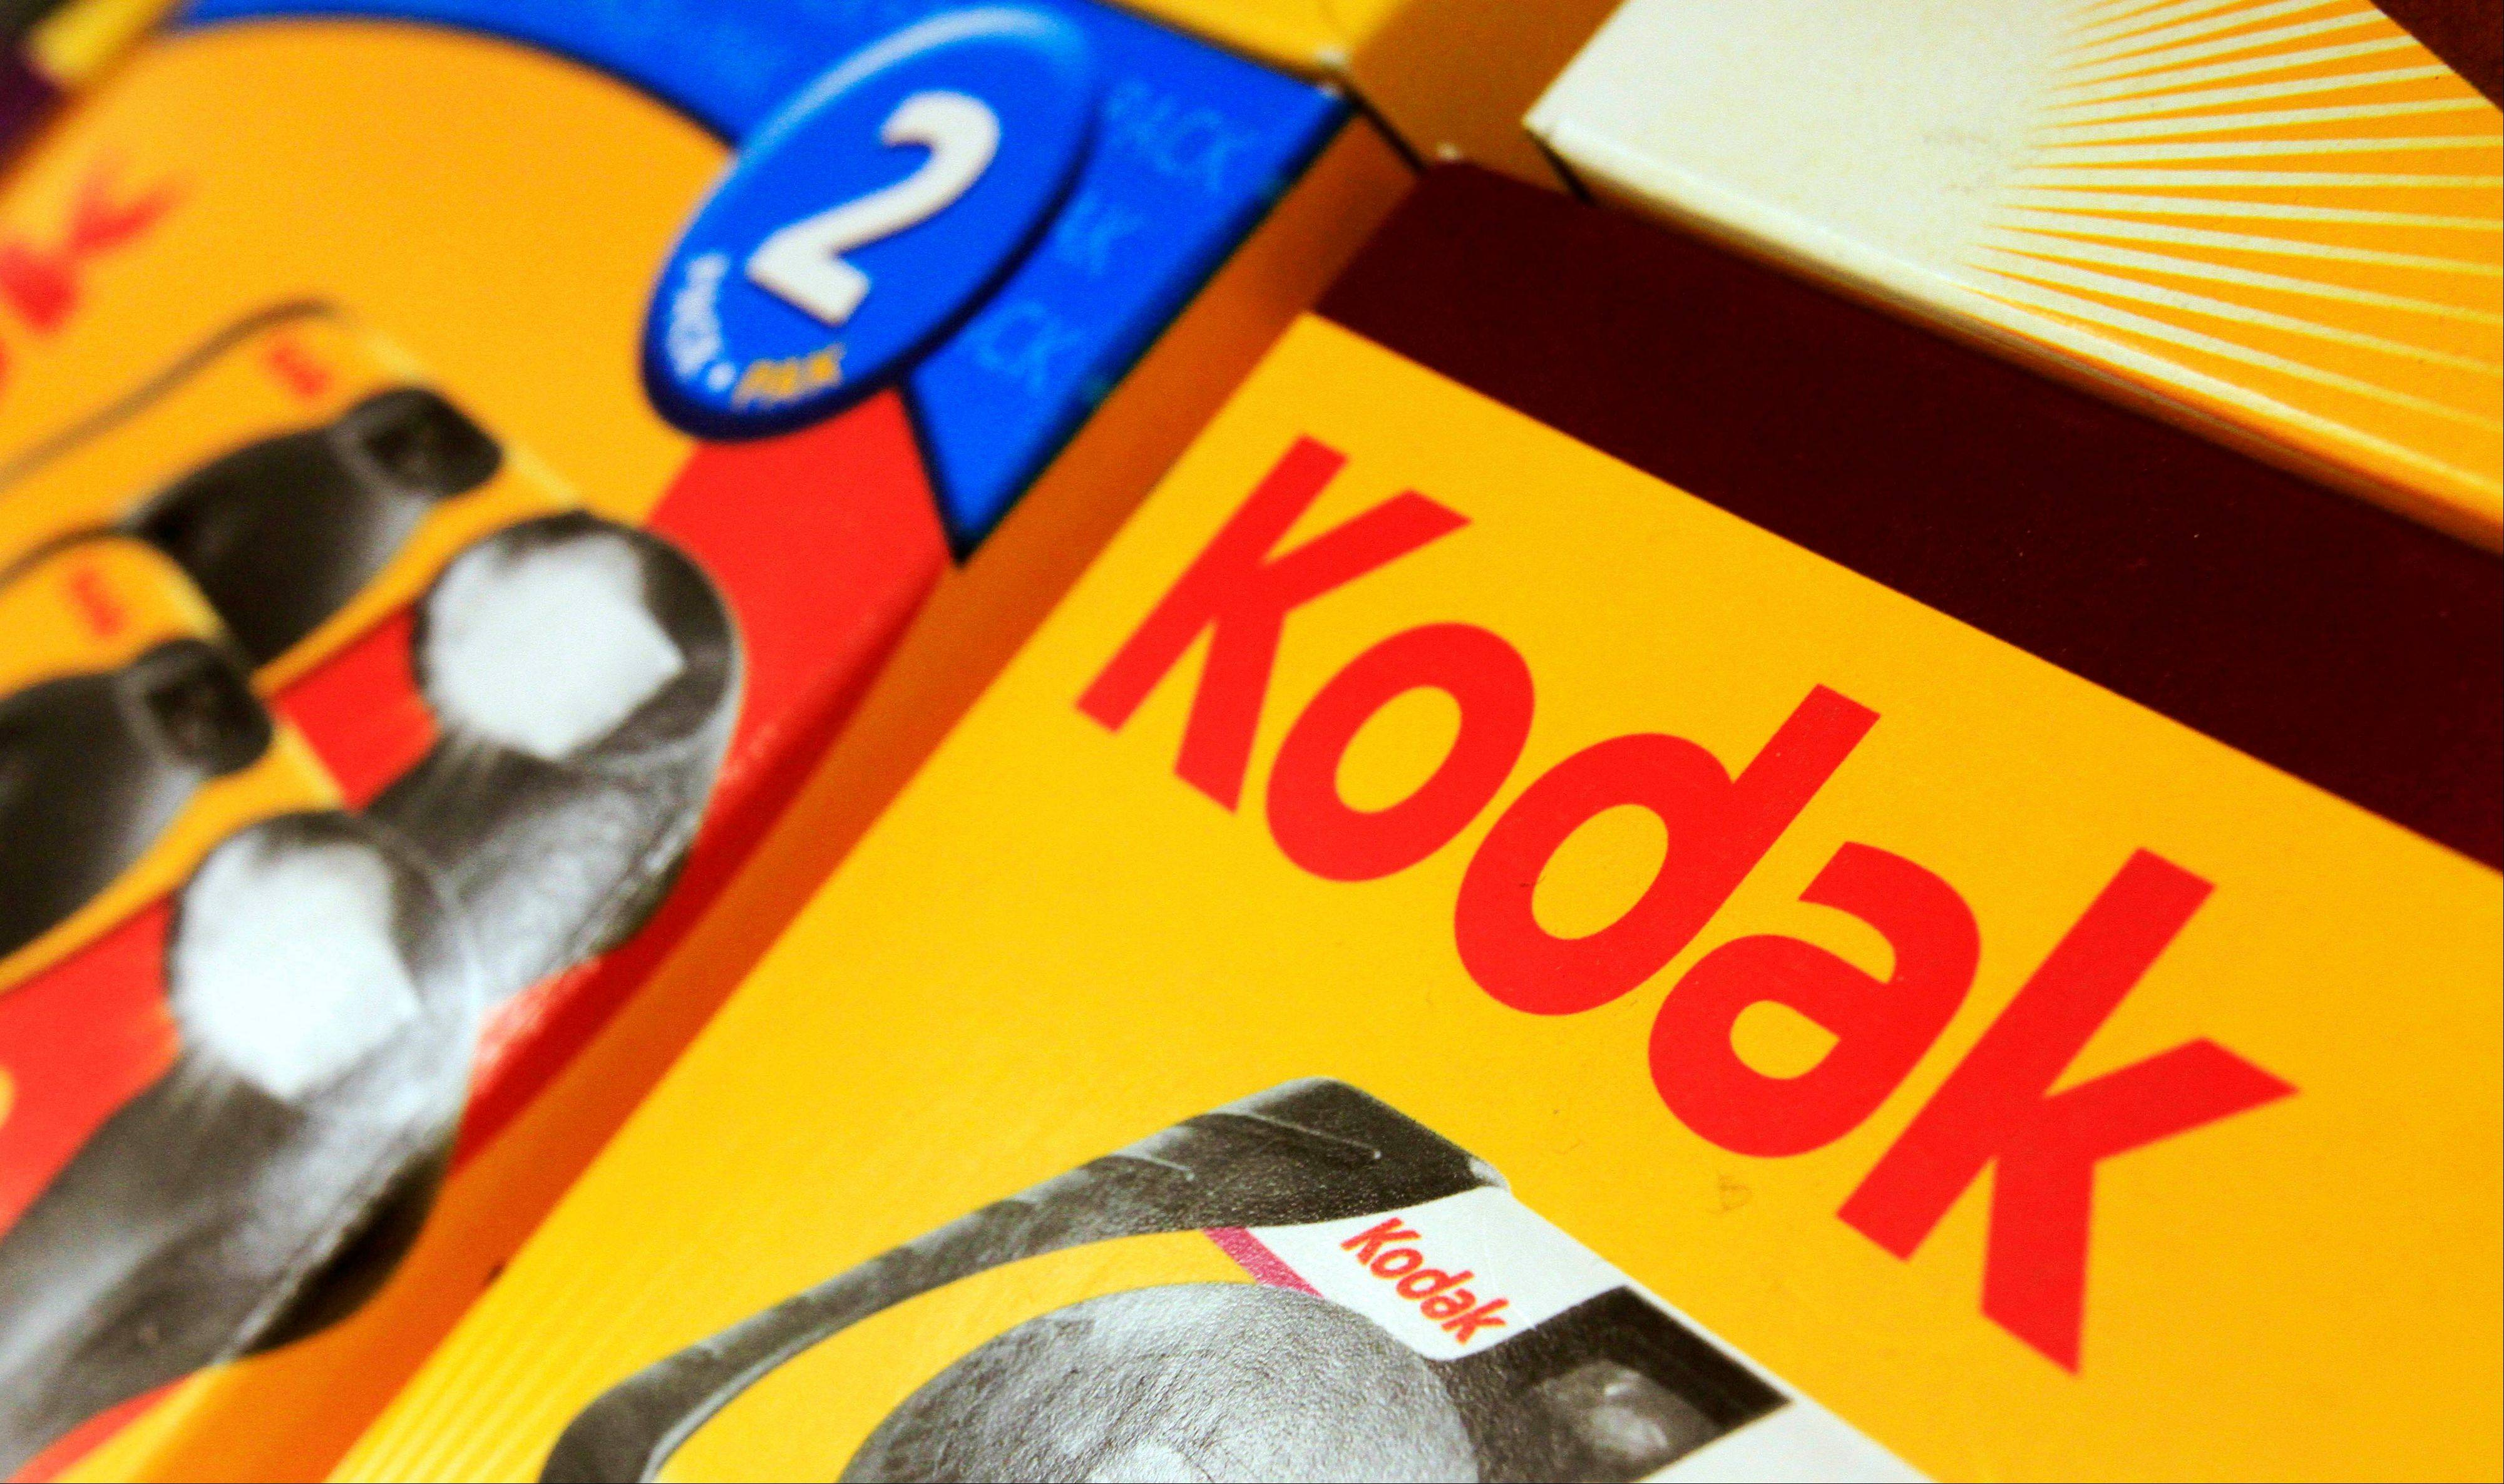 Kodak is reshuffling some executives and continuing to cut jobs as the pioneering photography company tries to emerge from bankruptcy protection.